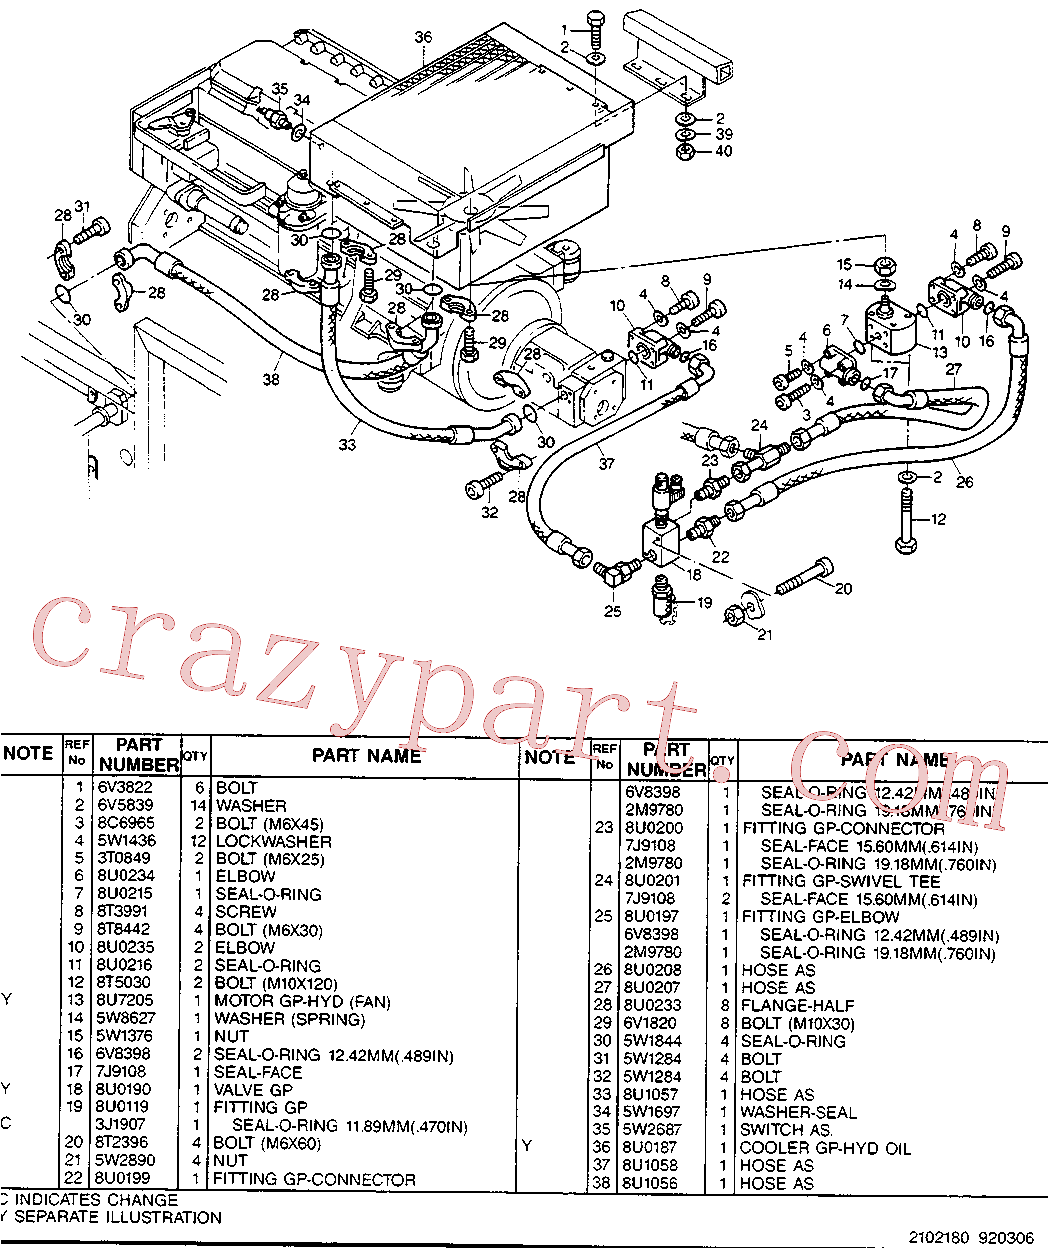 CAT 8U-2156 for 214B Excavator(EXC) hydraulic system 8U-0931 Assembly